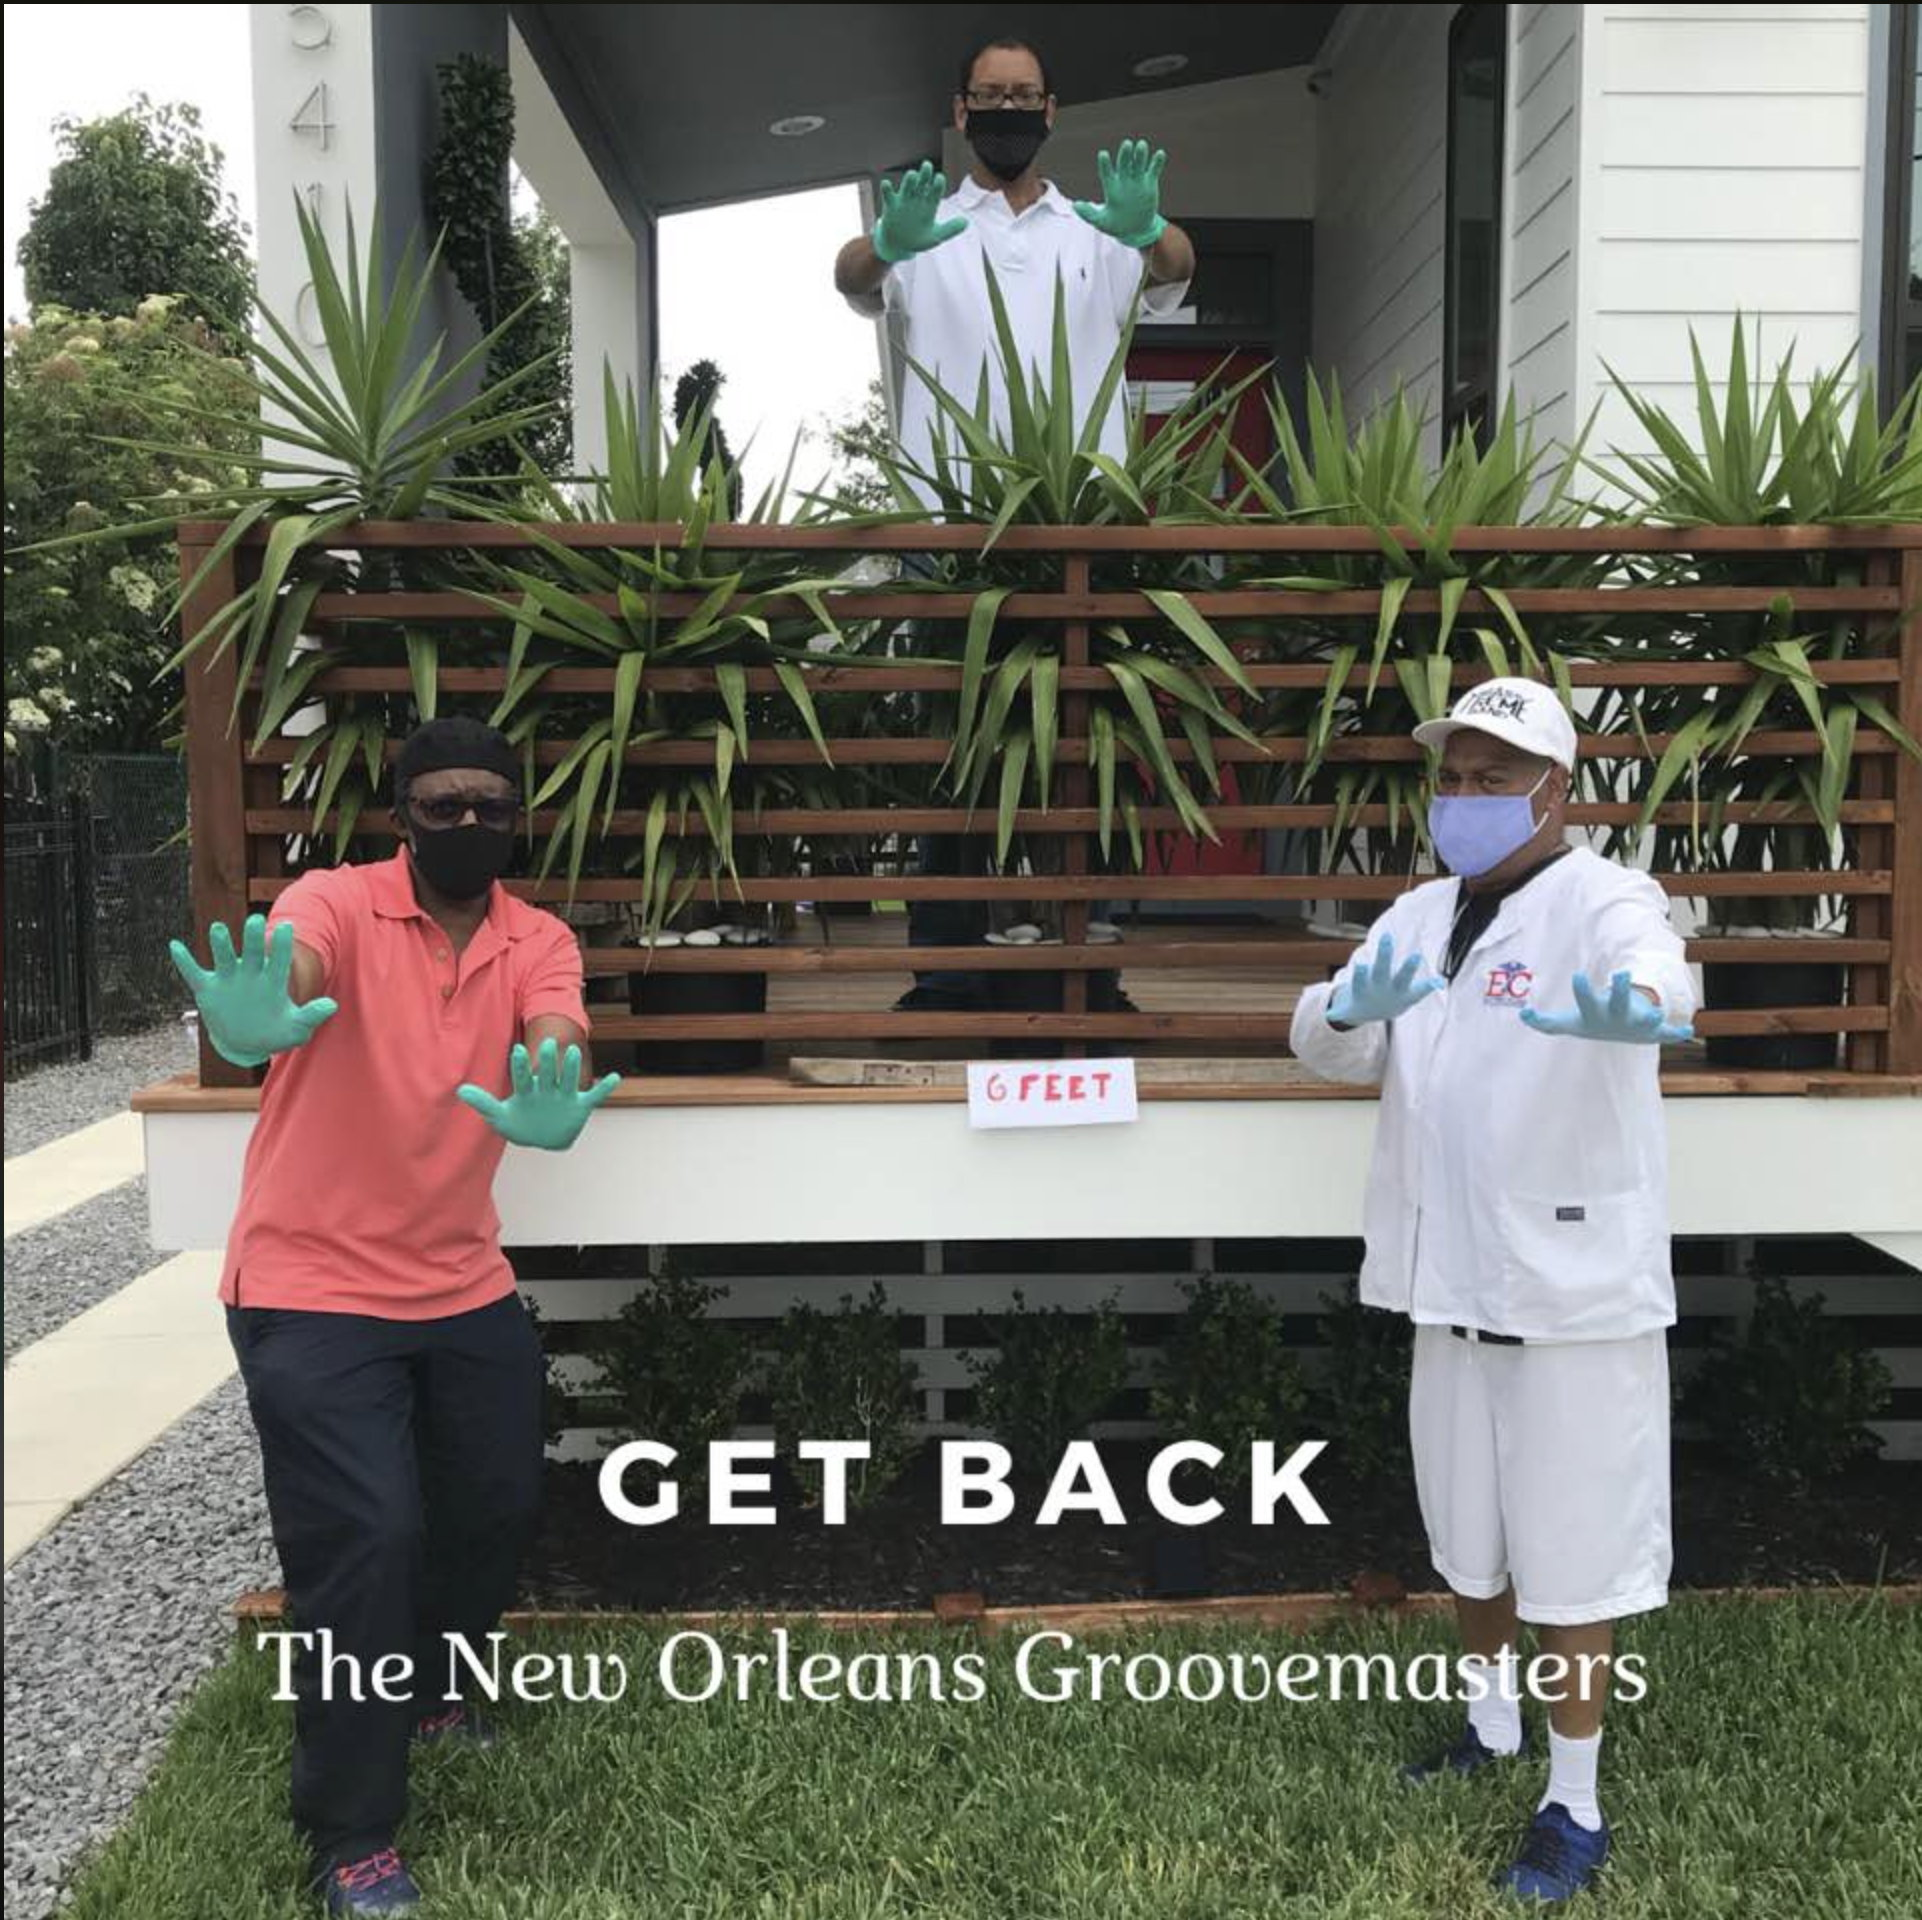 New Orleans Groovemasters